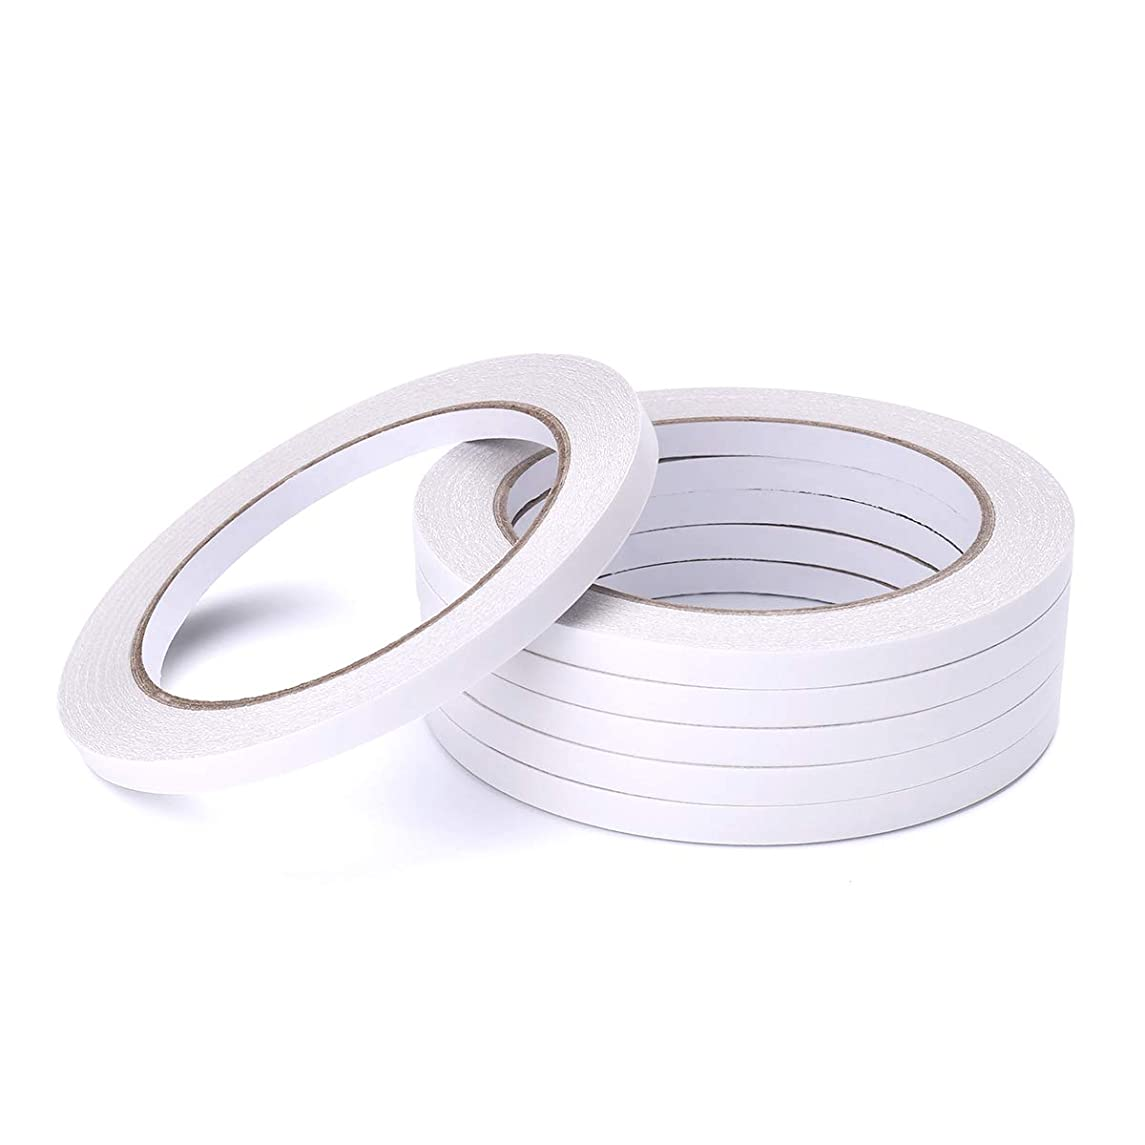 6 Rolls Double Sided Office Tape by LE PAPILLION JEWELRY - Clear Double-Sided Adhesive Tape Removable for DIY Arts, Crafts, Scrapbook, Photos Display ect,1/4-Inch x 22.9 Yards (6.35mm x 21m)